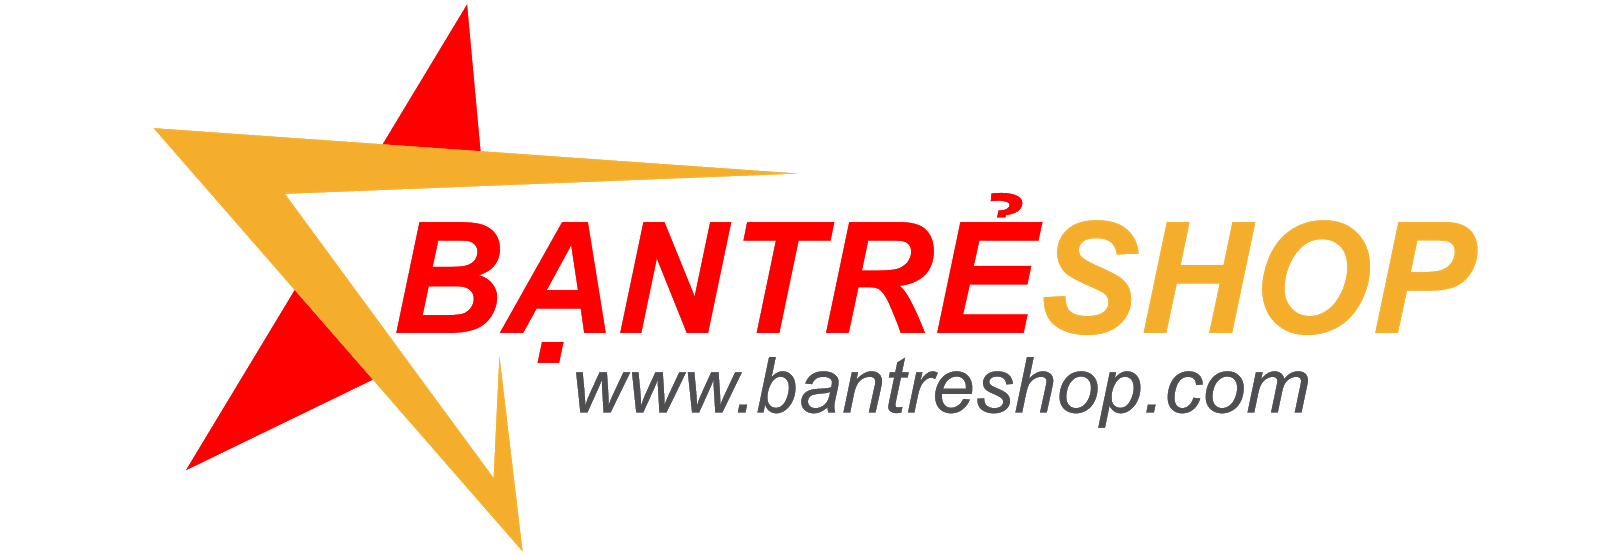 BantreShop.com